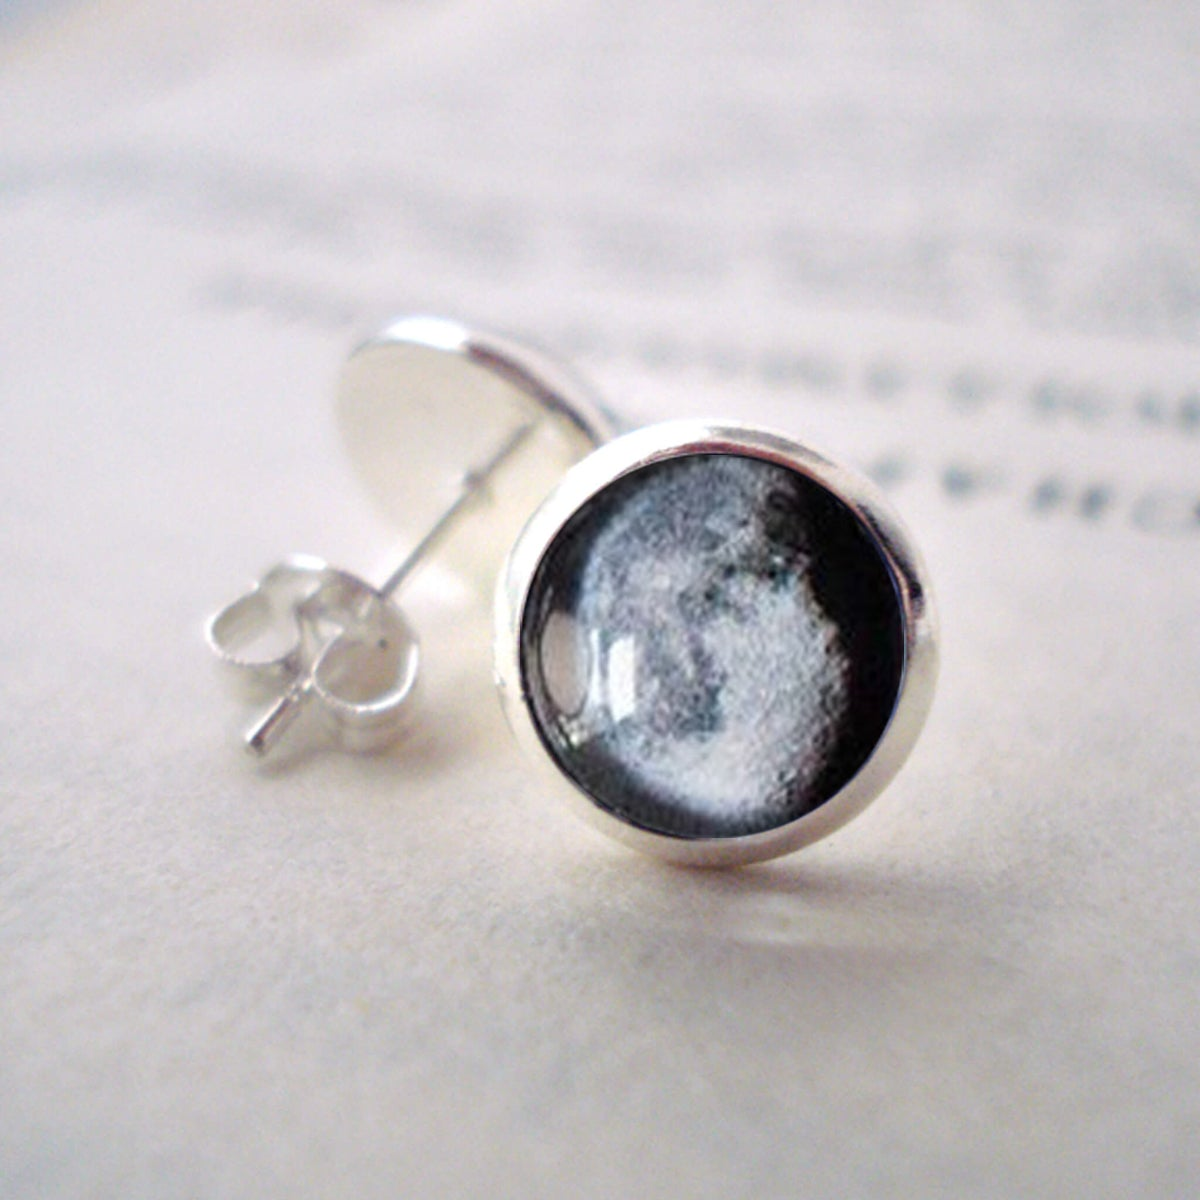 Silver Tone Stud Earrings with Custom Moon Phase